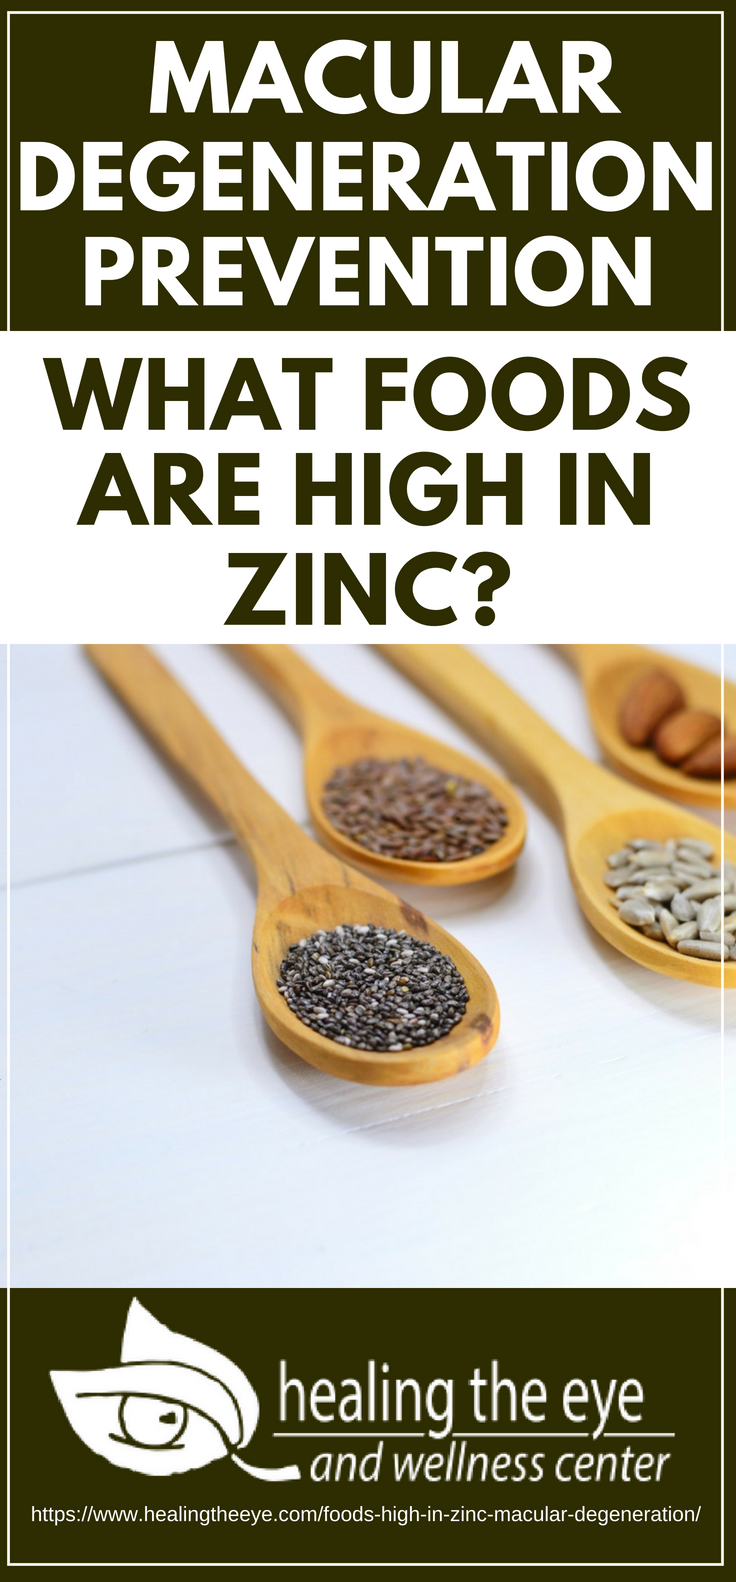 Pinterest Placard | Macular Degeneration Prevention | What foods are high in zinc?